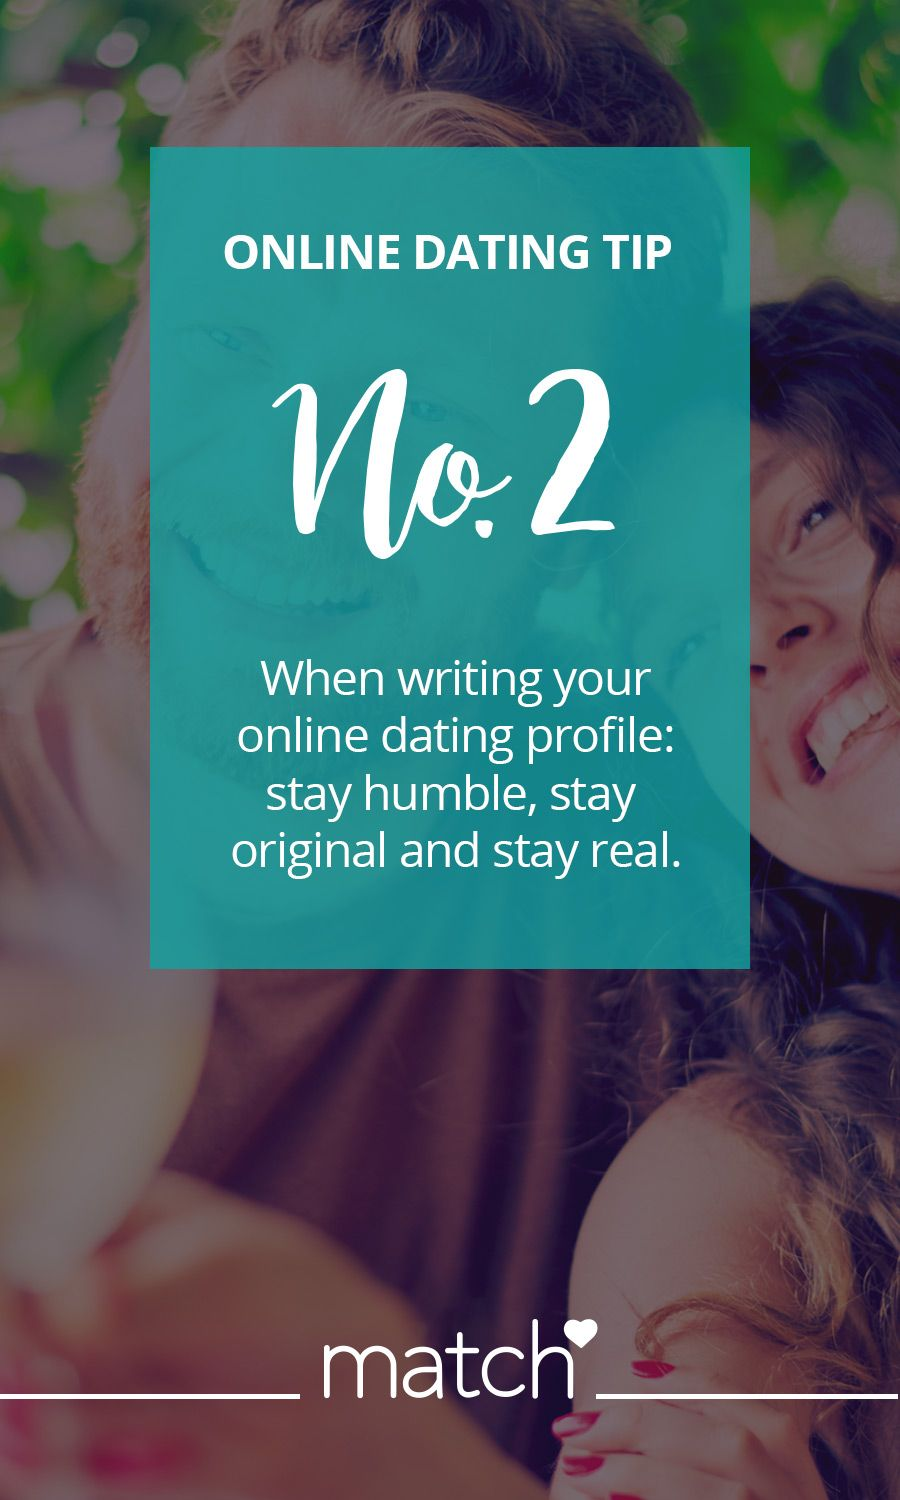 If you are new to online dating and in the search for a